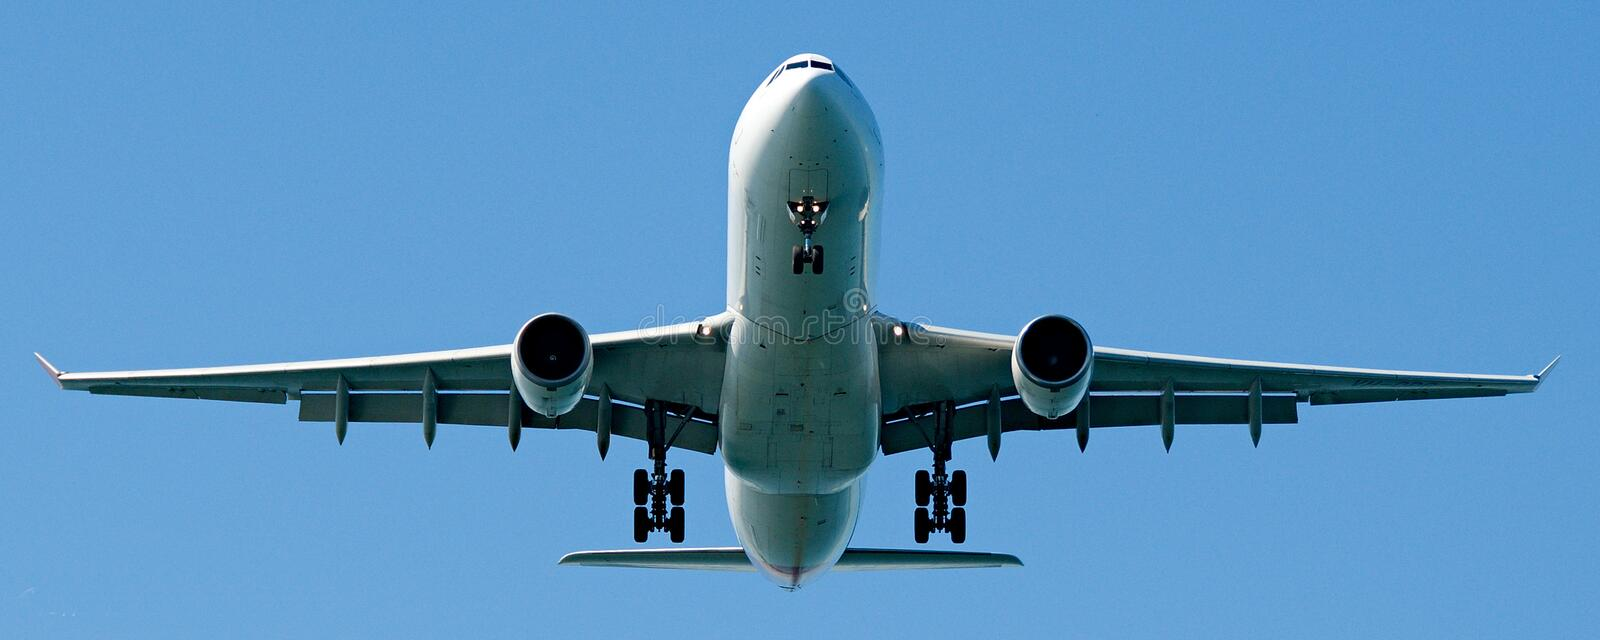 Commercial Jet Aircraft at Sydney Airport royalty free stock photos